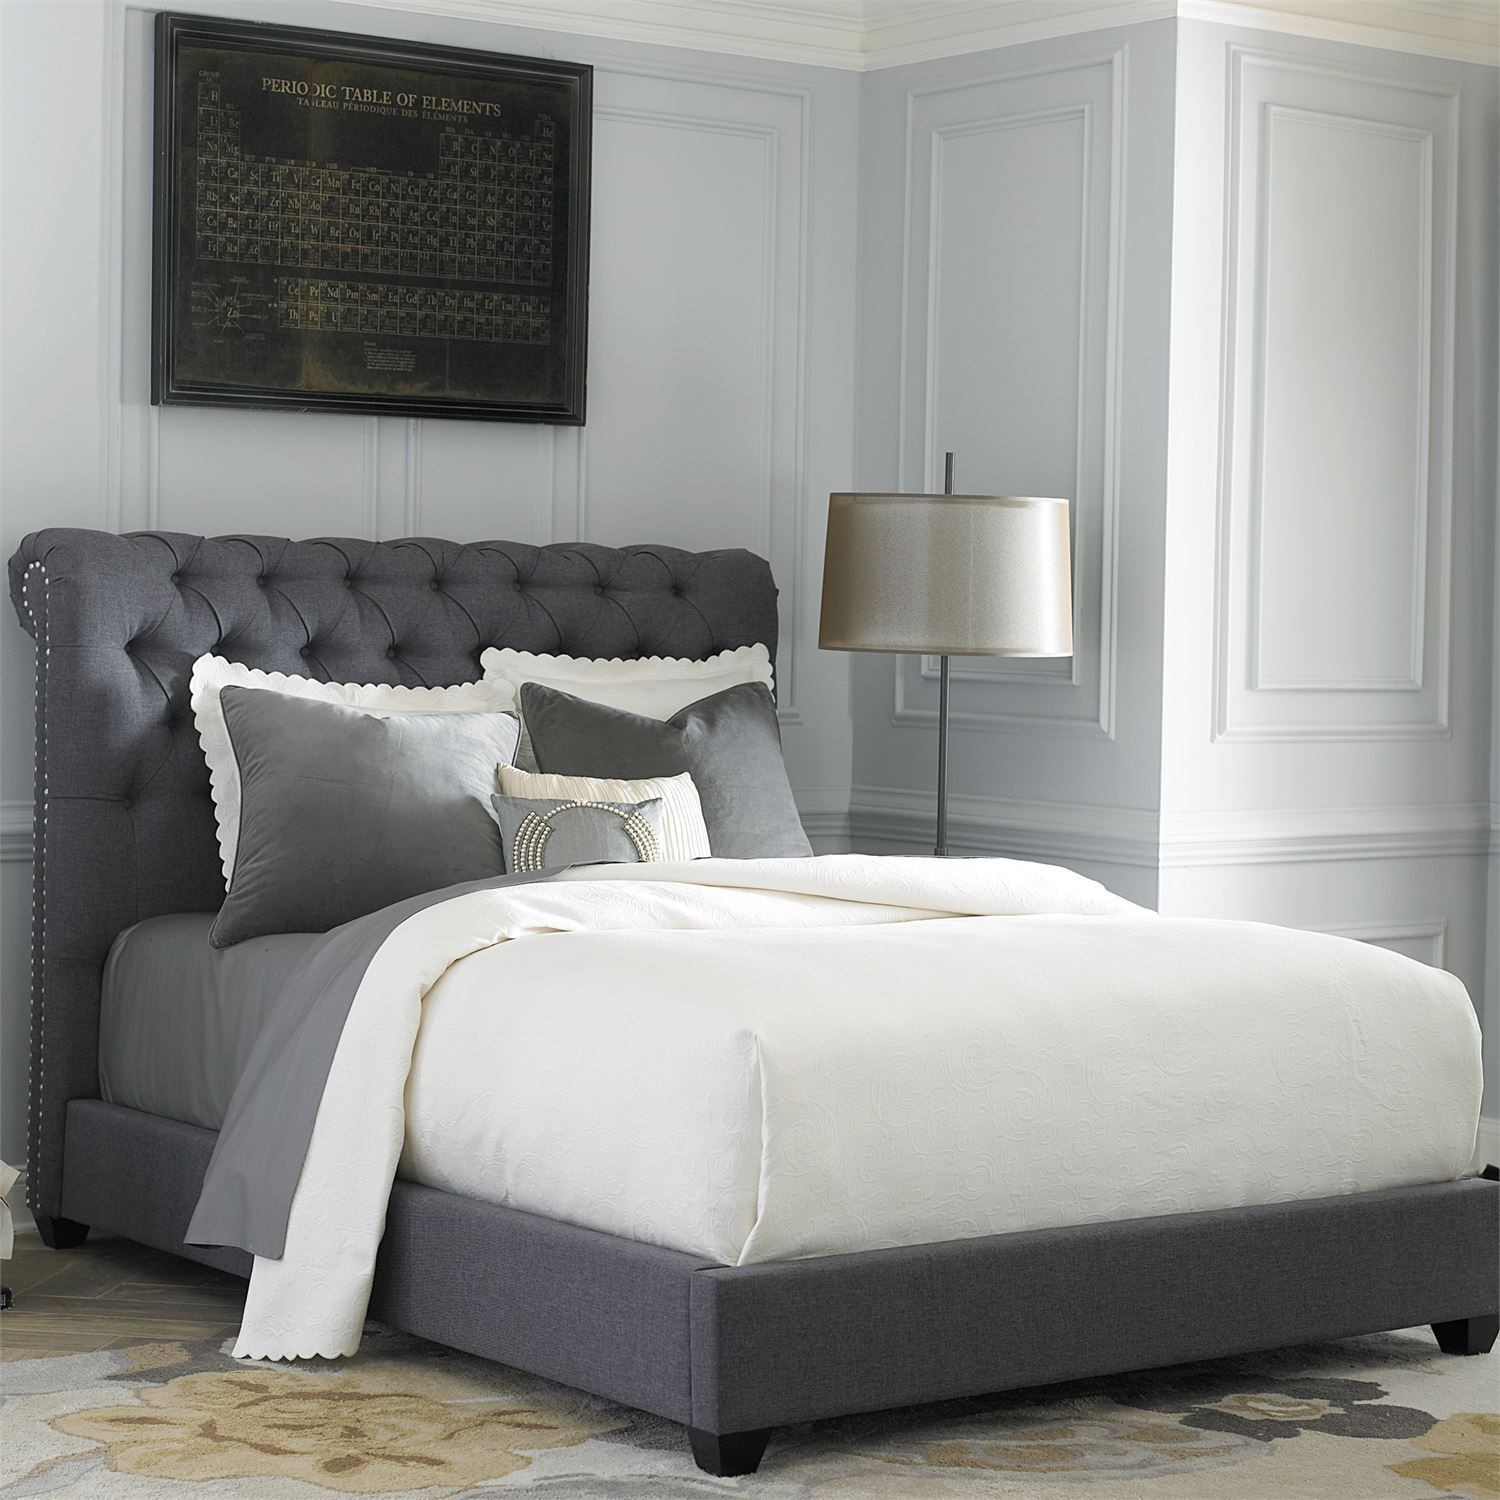 Dark Gray Upholstered King Sleigh Bed From Liberty 250